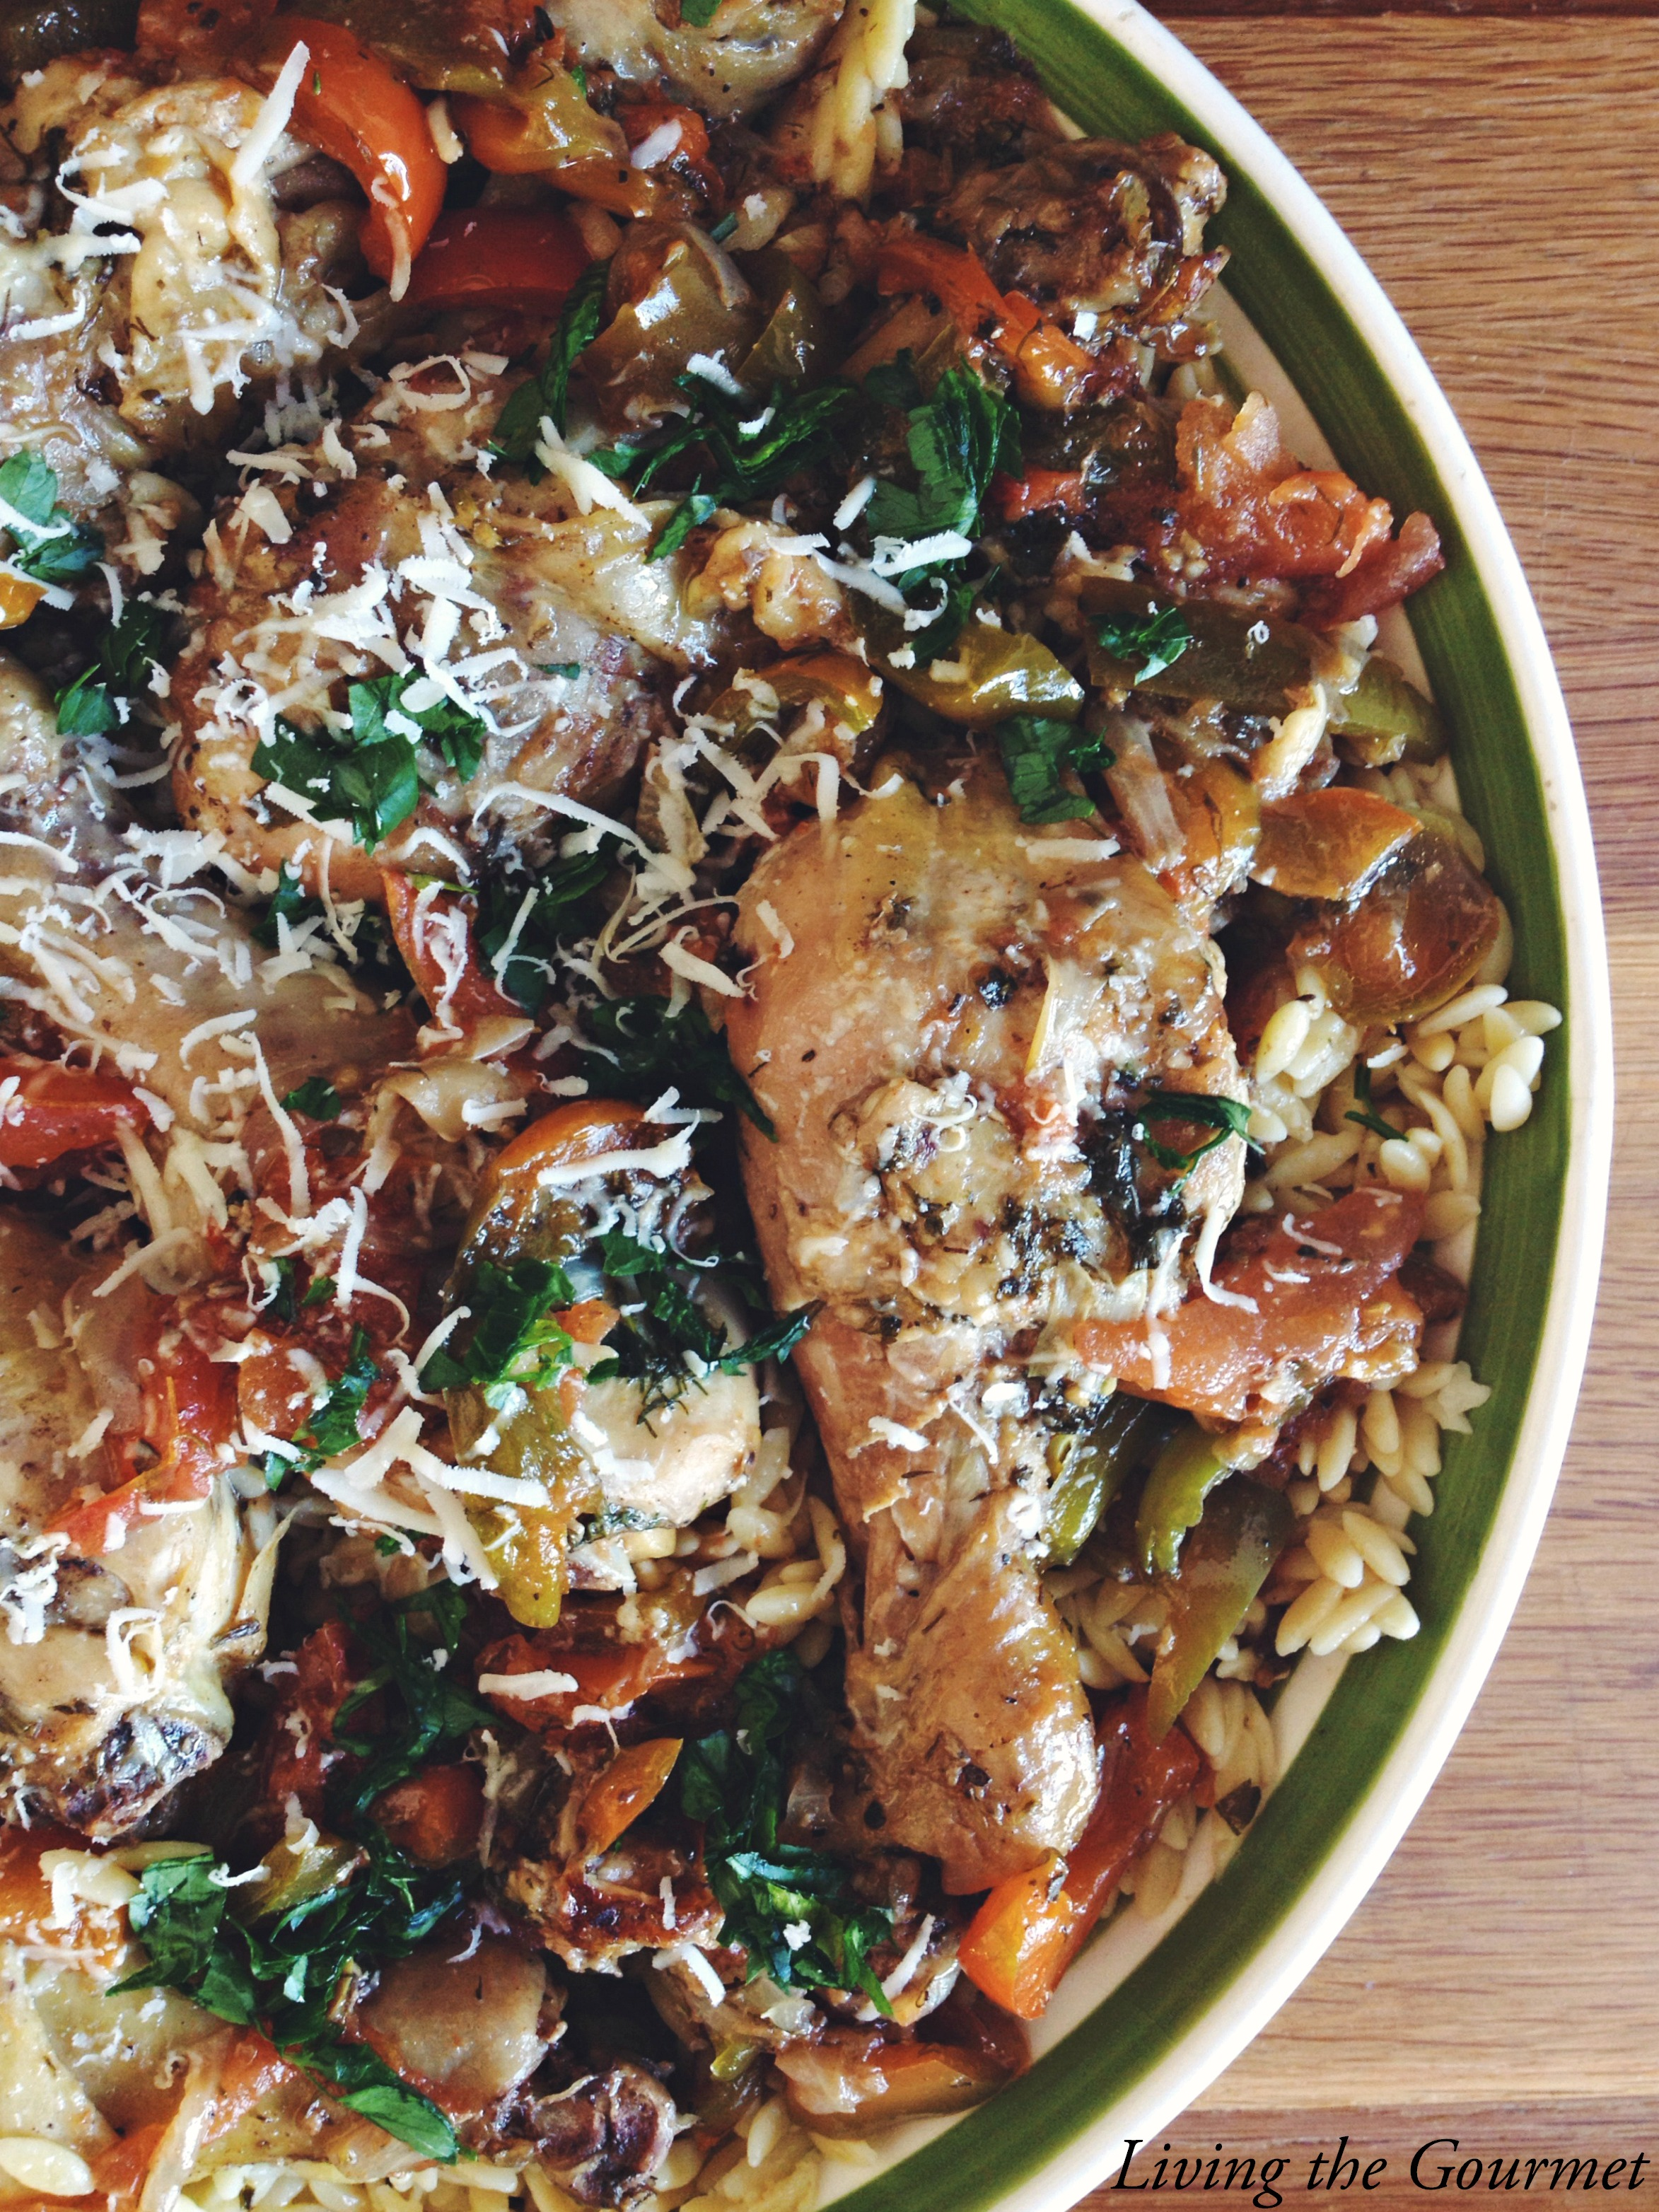 Living the Gourmet: Greek Style Chicken with Orzo